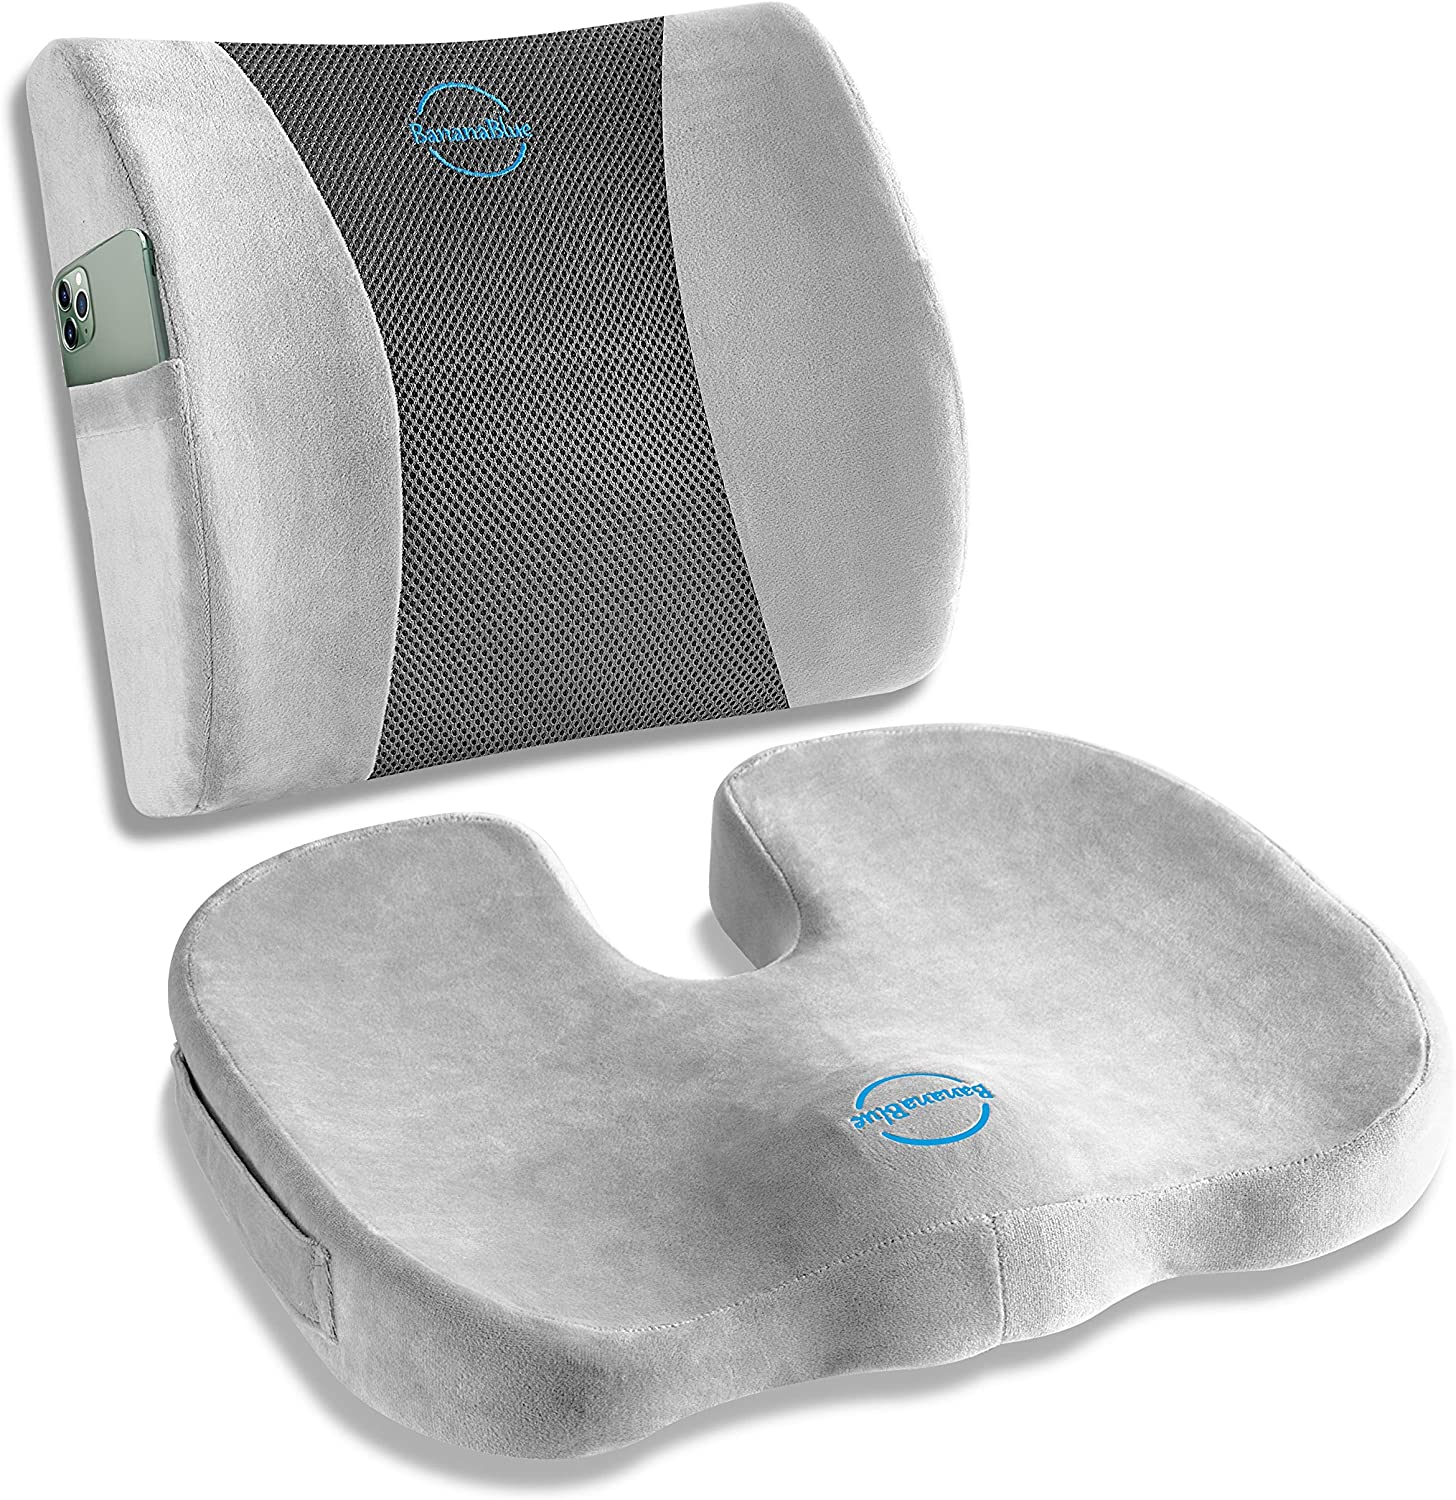 Ultimate Set: Ergonomic Lumbar Support Courier shipping free and Pillow Seat U-Shaped Max 52% OFF